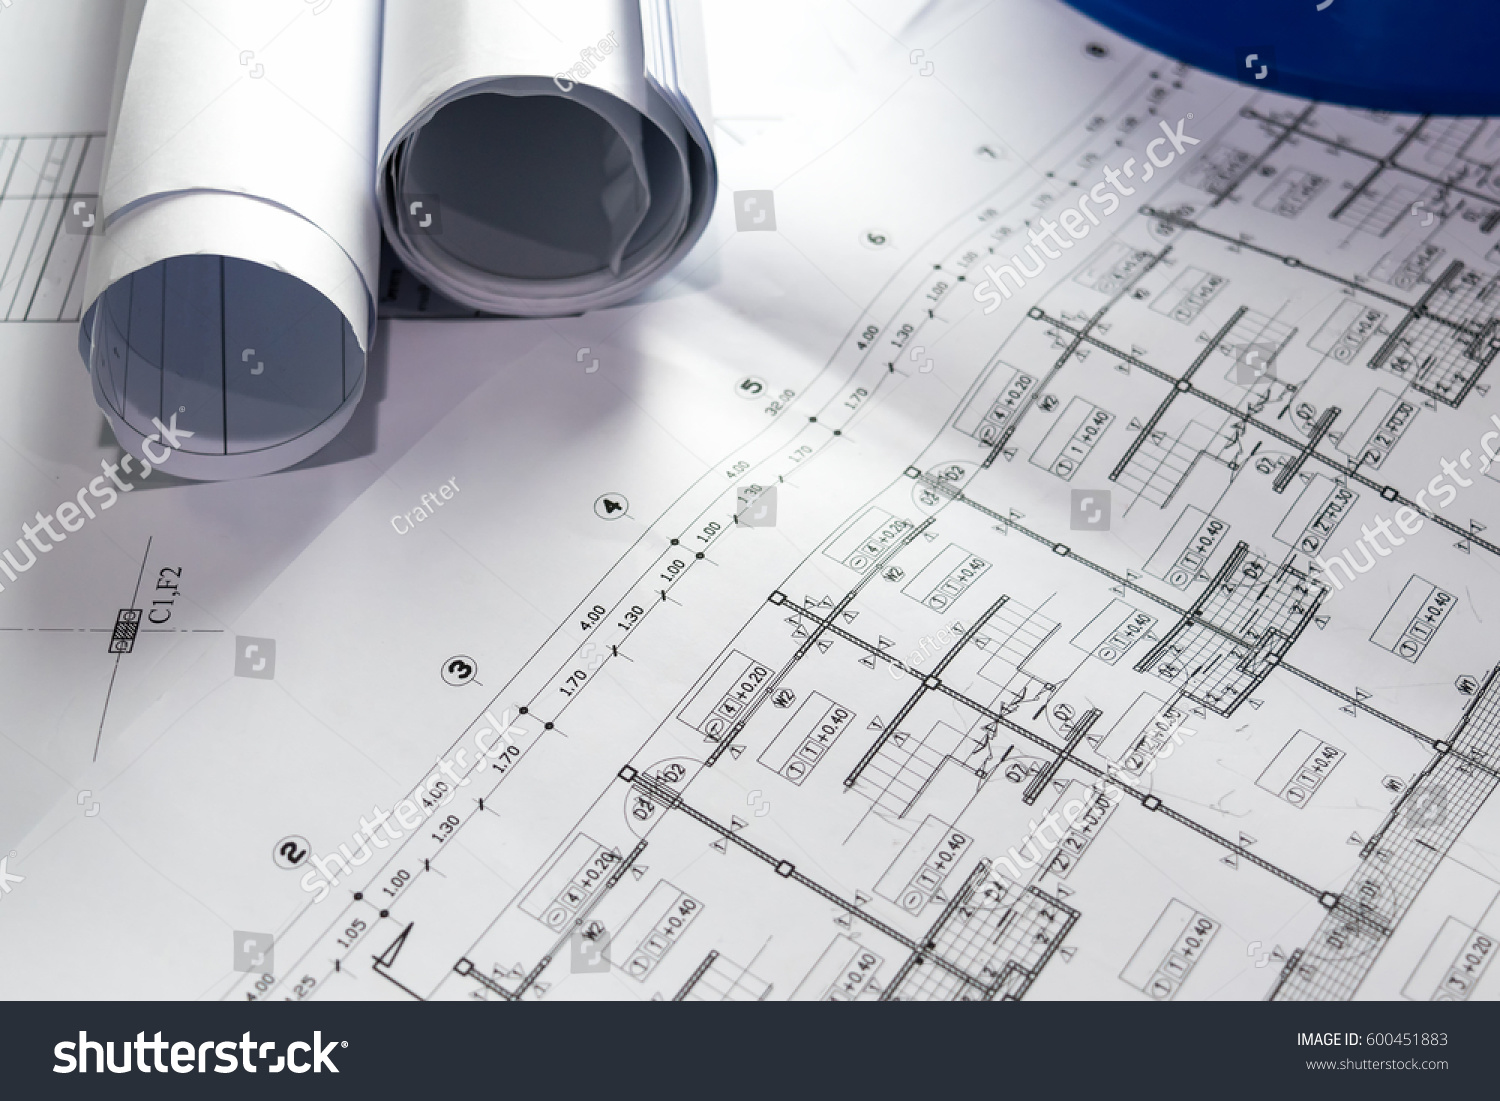 Engineering diagram blueprint paper drafting project stock photo engineering diagram blueprint paper drafting project sketch architecturalselective focus malvernweather Image collections